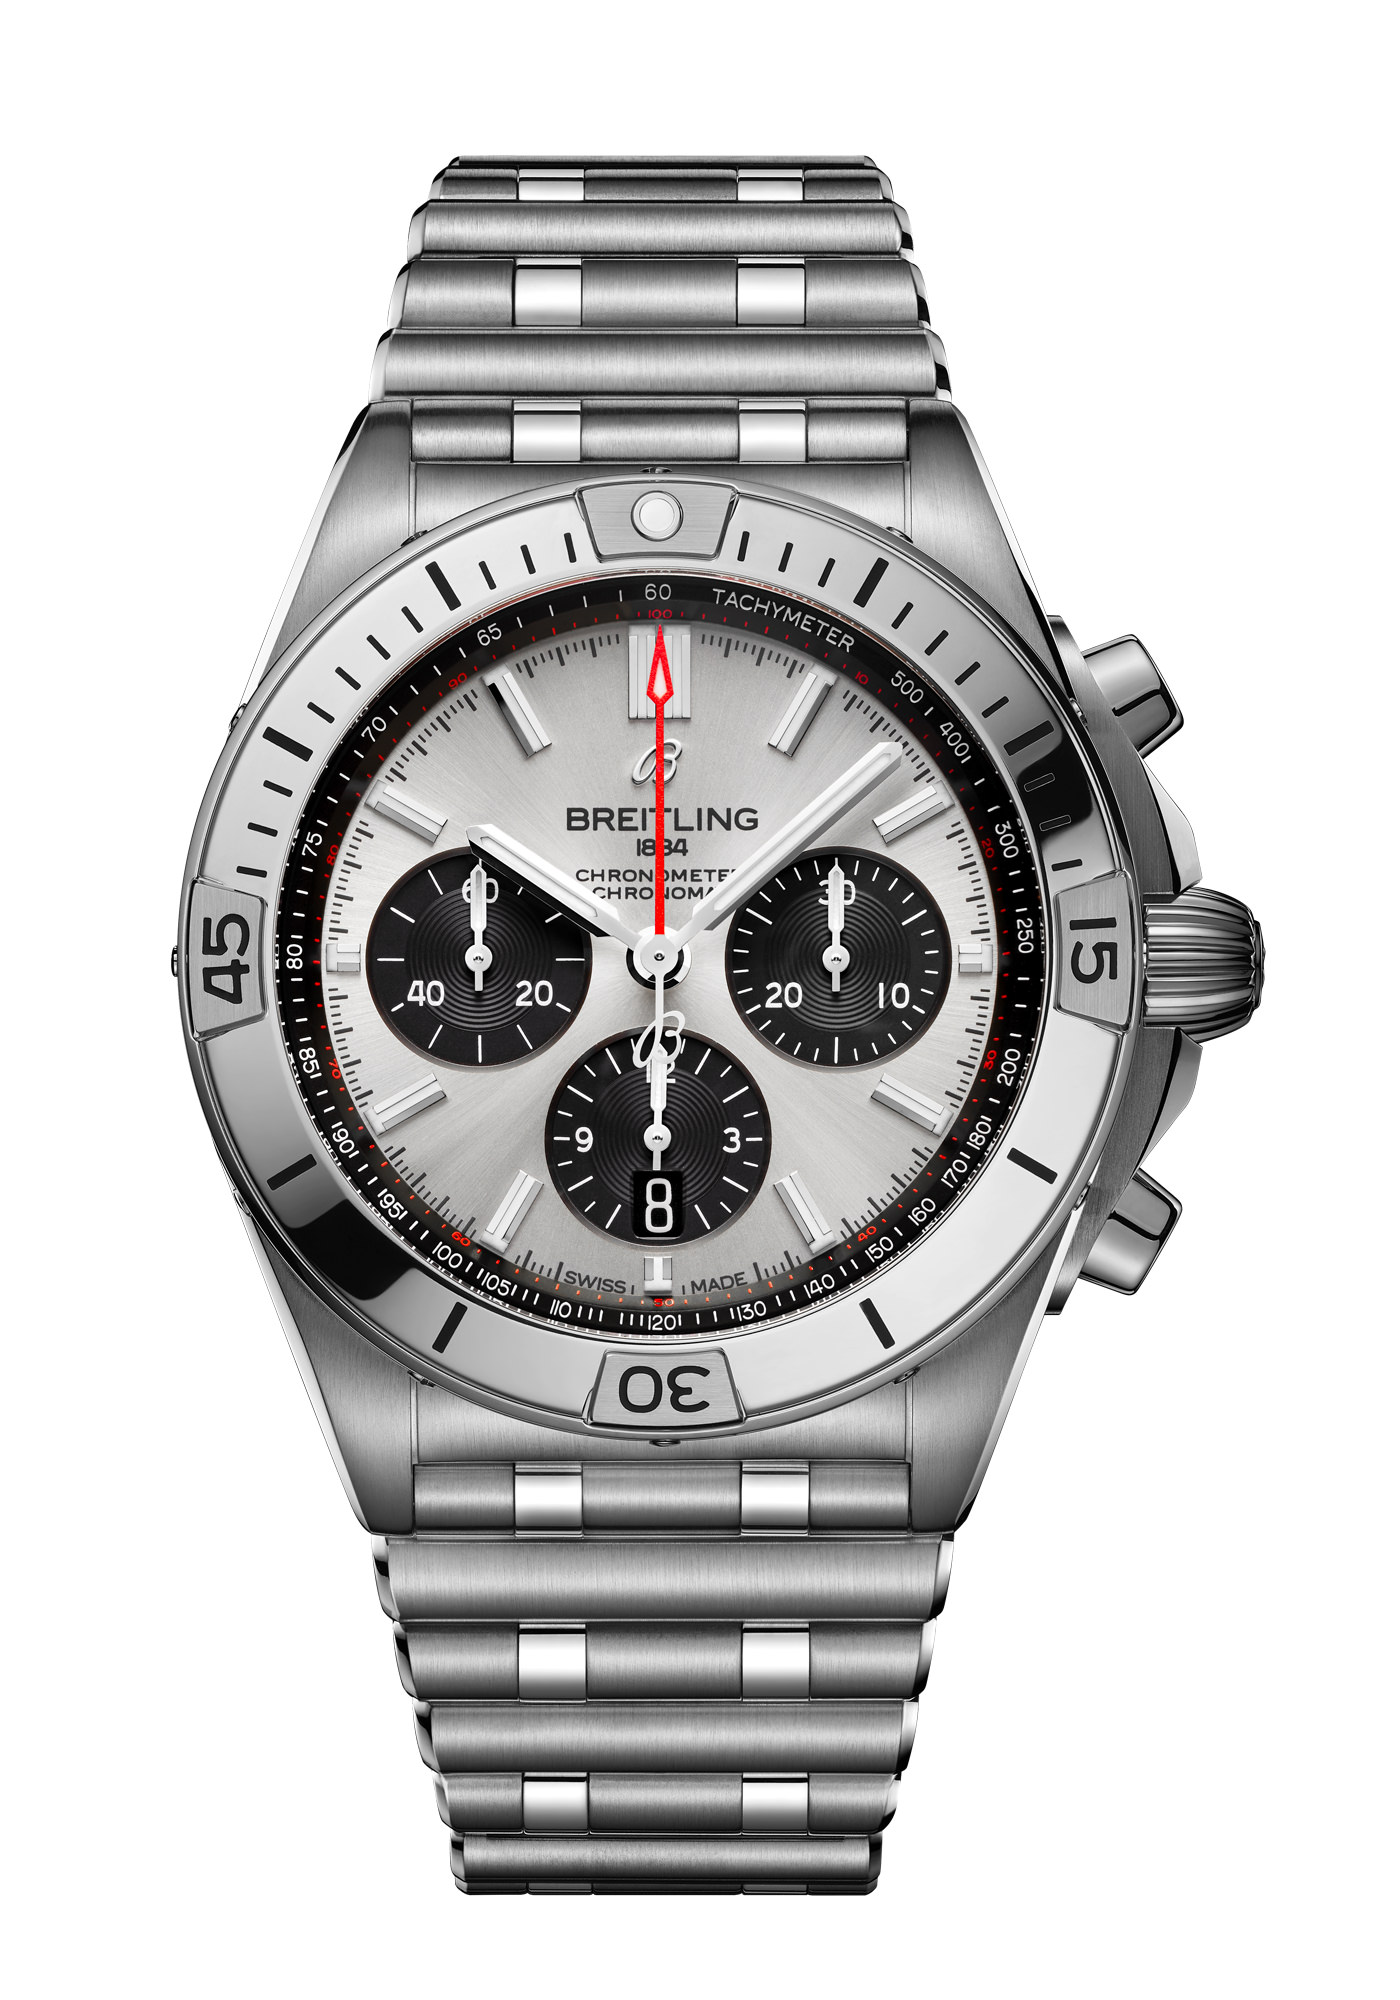 Nouvelle collection Breitling Chronomat 2020